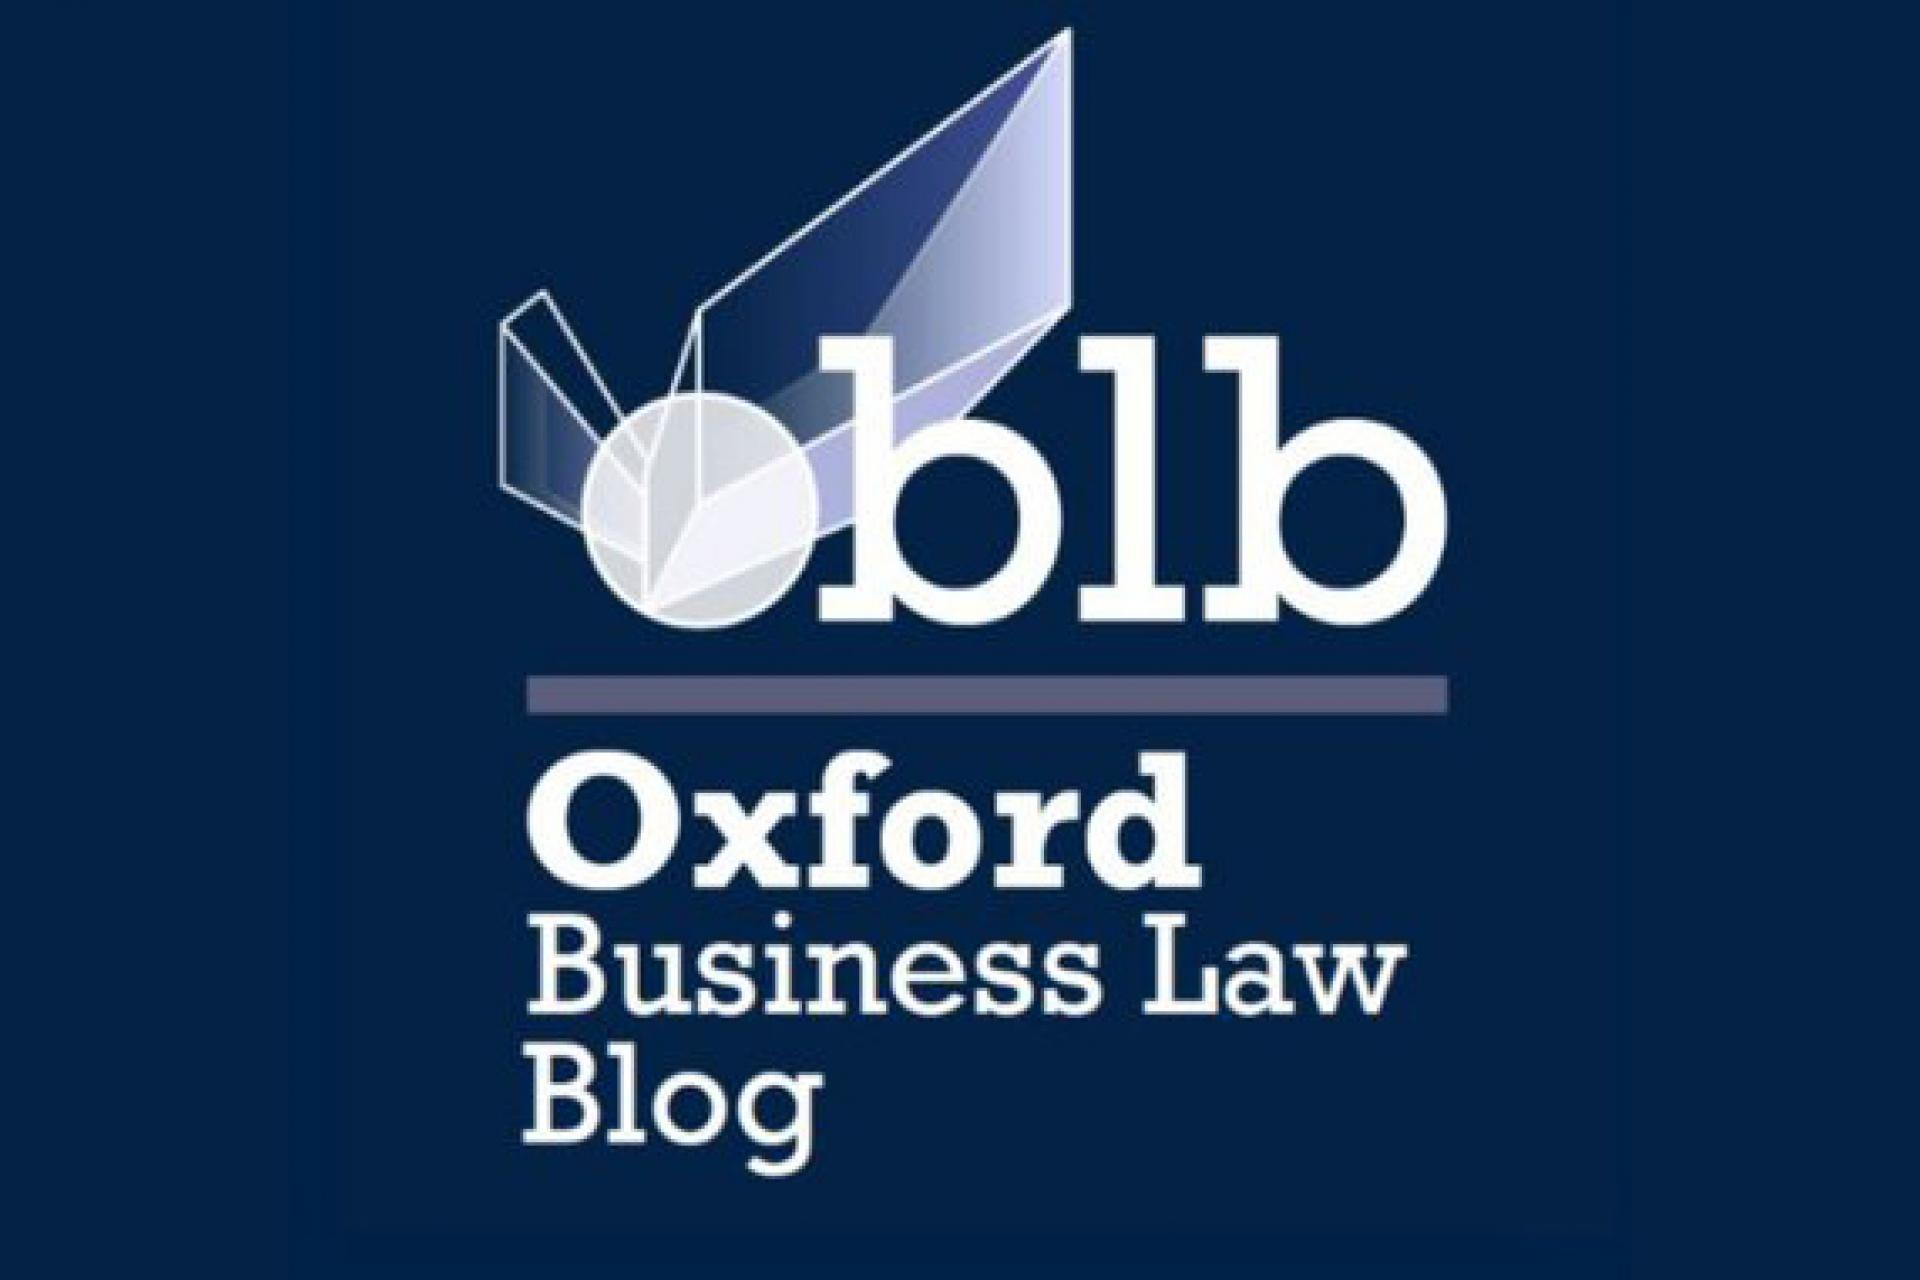 Oxford Business Law Blog logo